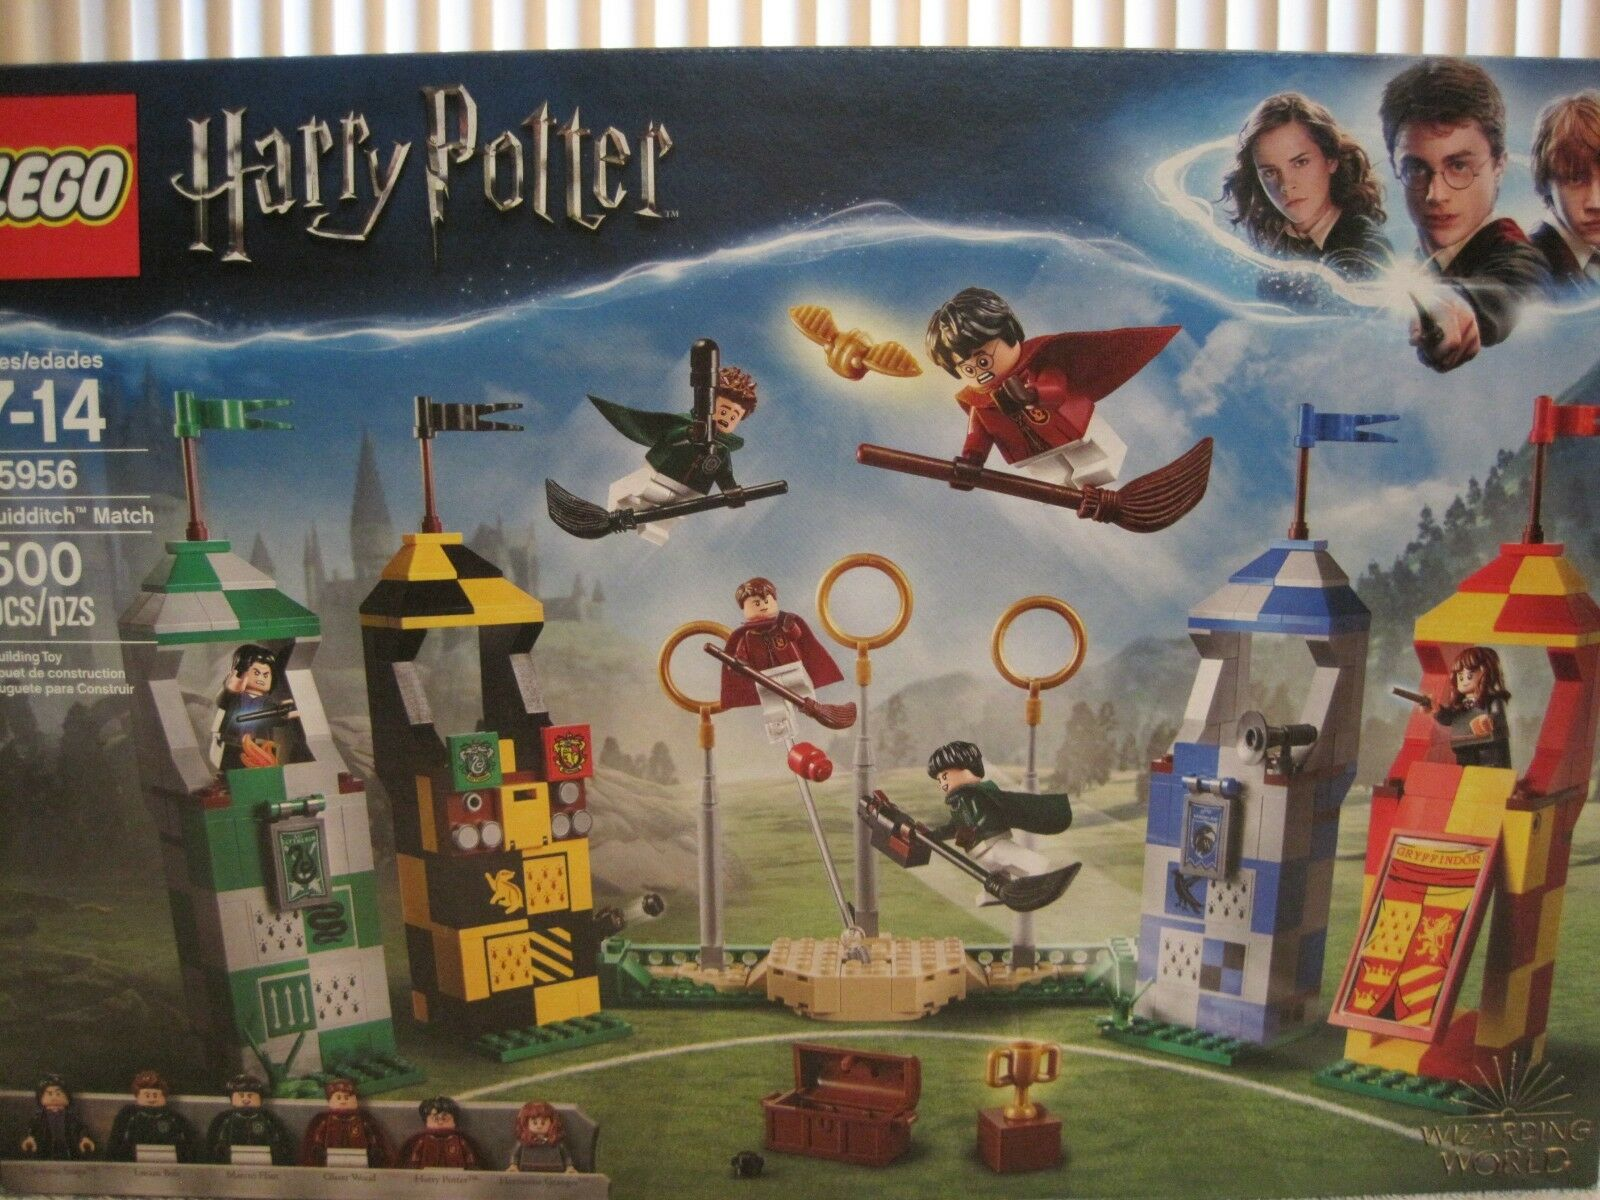 LEGO LEGO LEGO 75956 WIZARDING WORLD HARRY POTTER QUIDDITCH MATCH-NEW-FACTORY SEALED bc9017